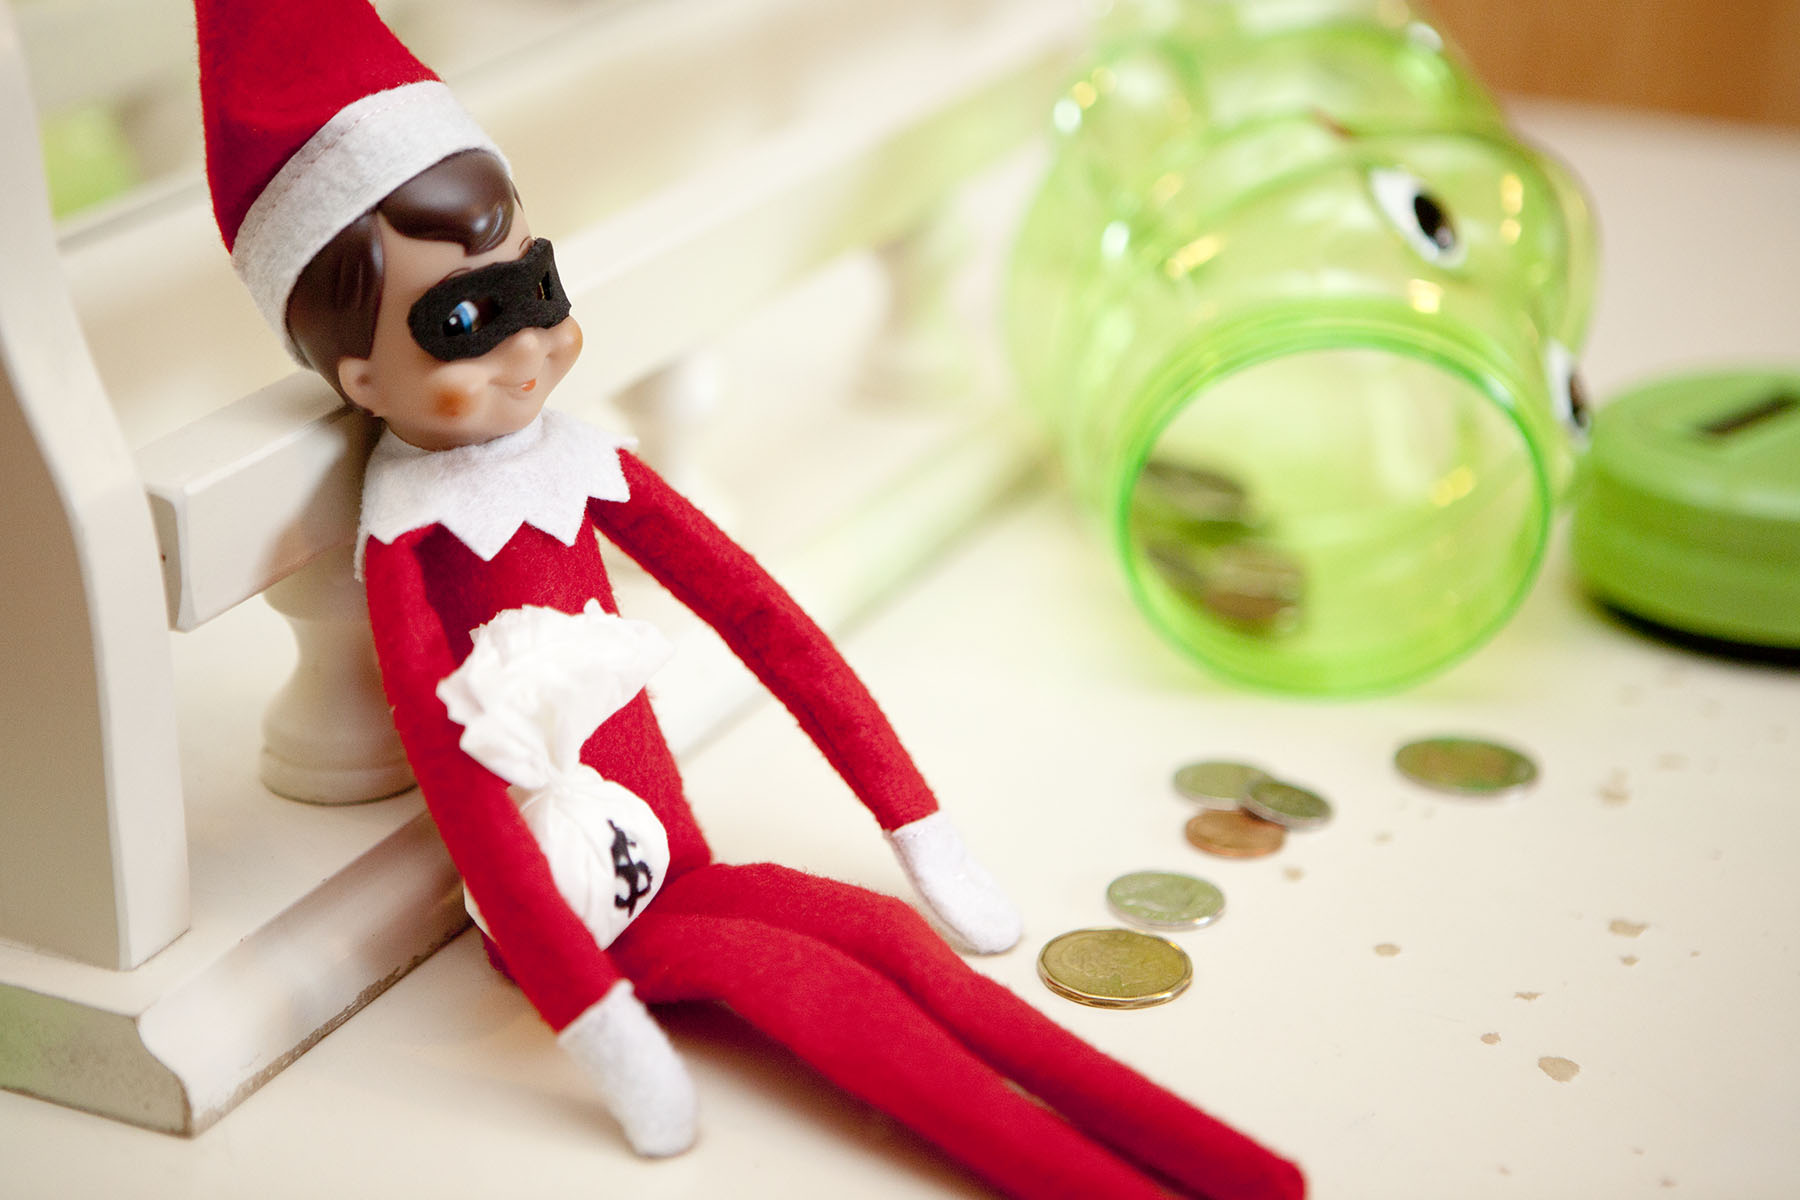 Elf raids a child's piggy bank!